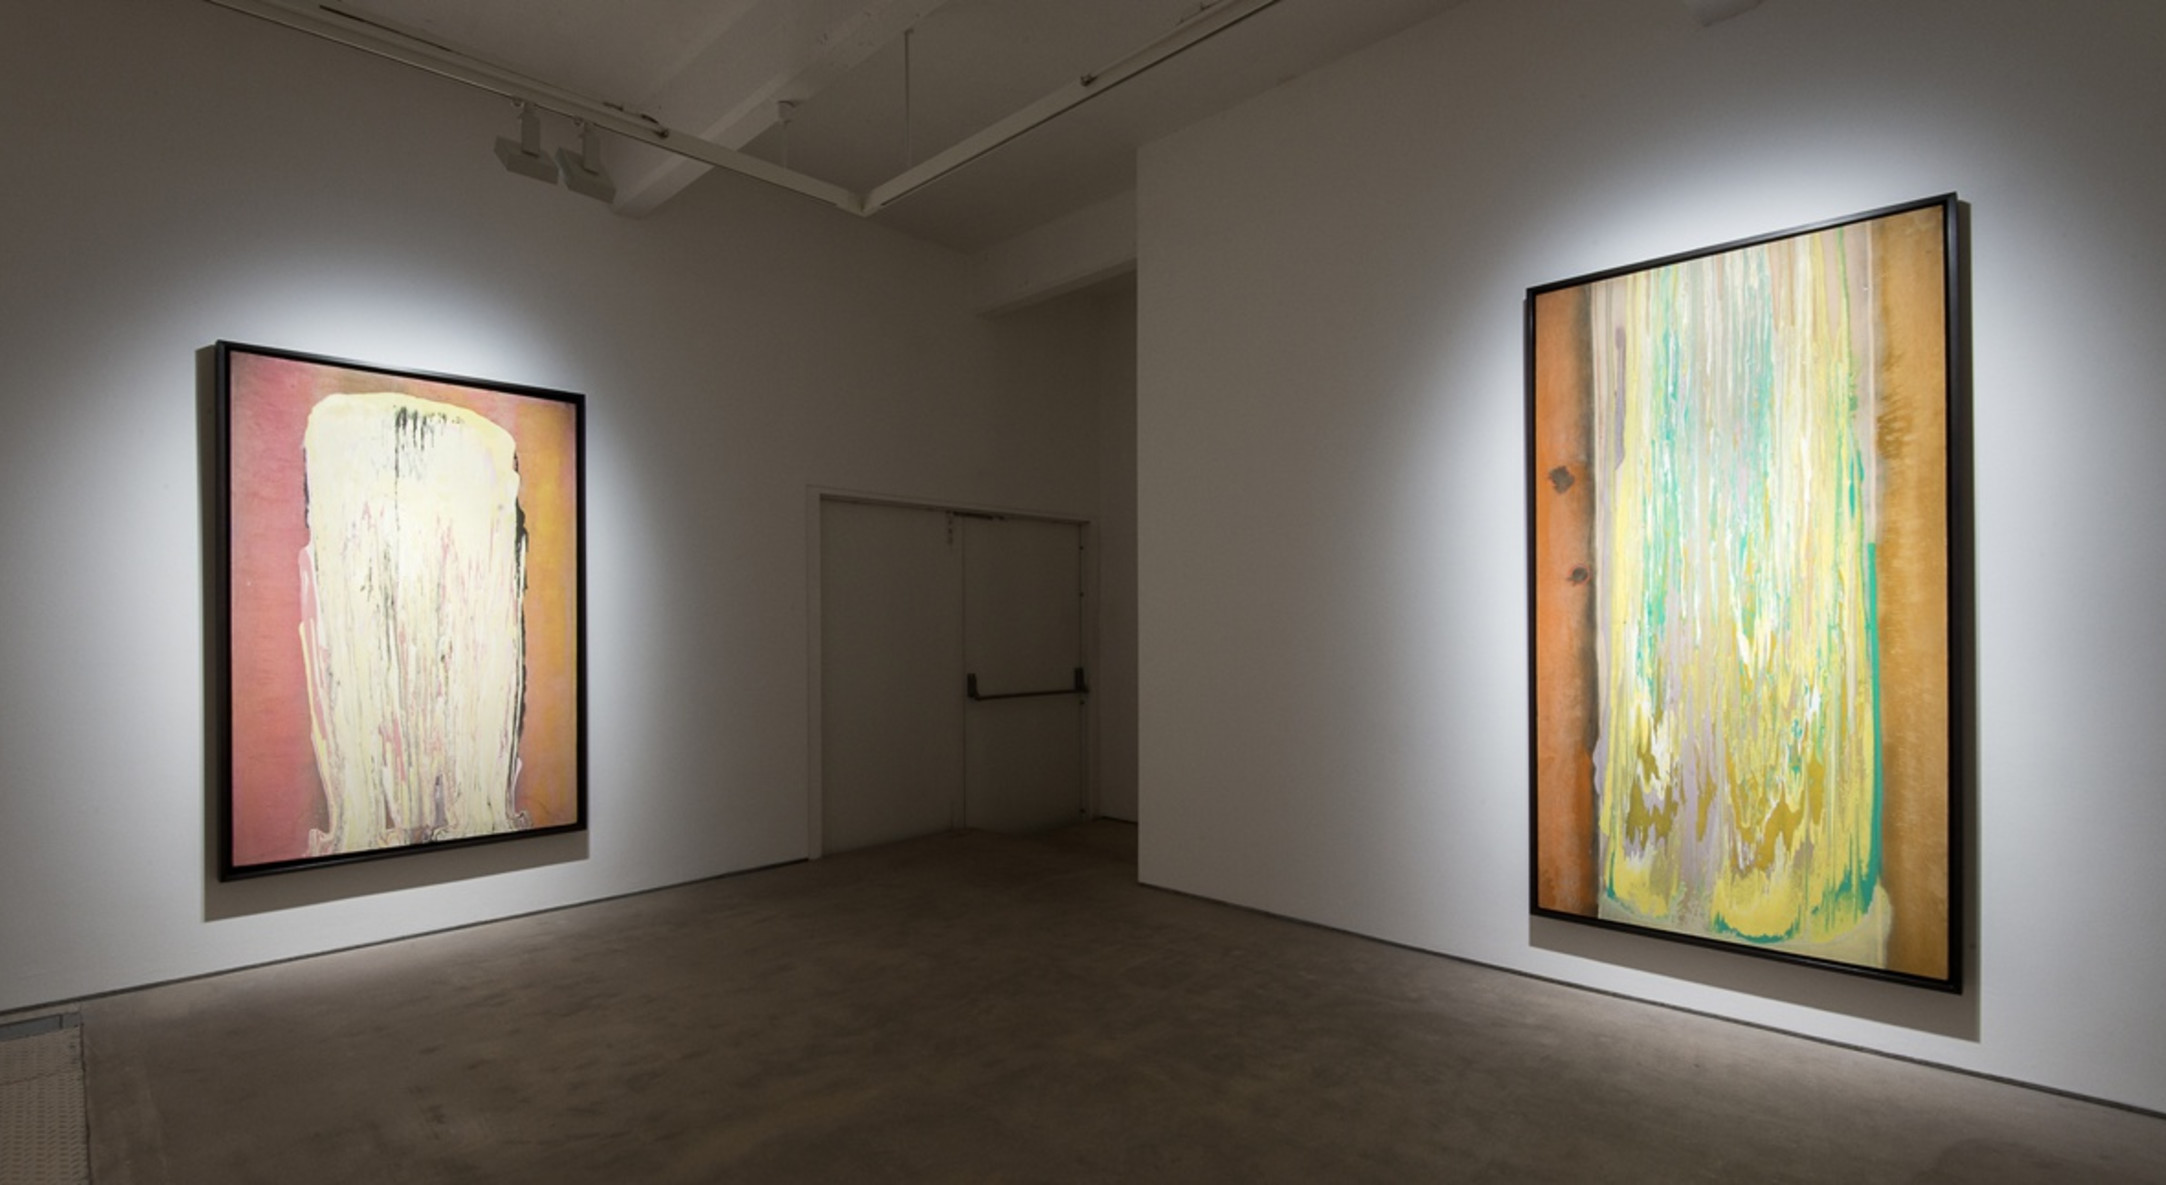 Installation view of Frank Bowling, The Poured Paintings at Hales London